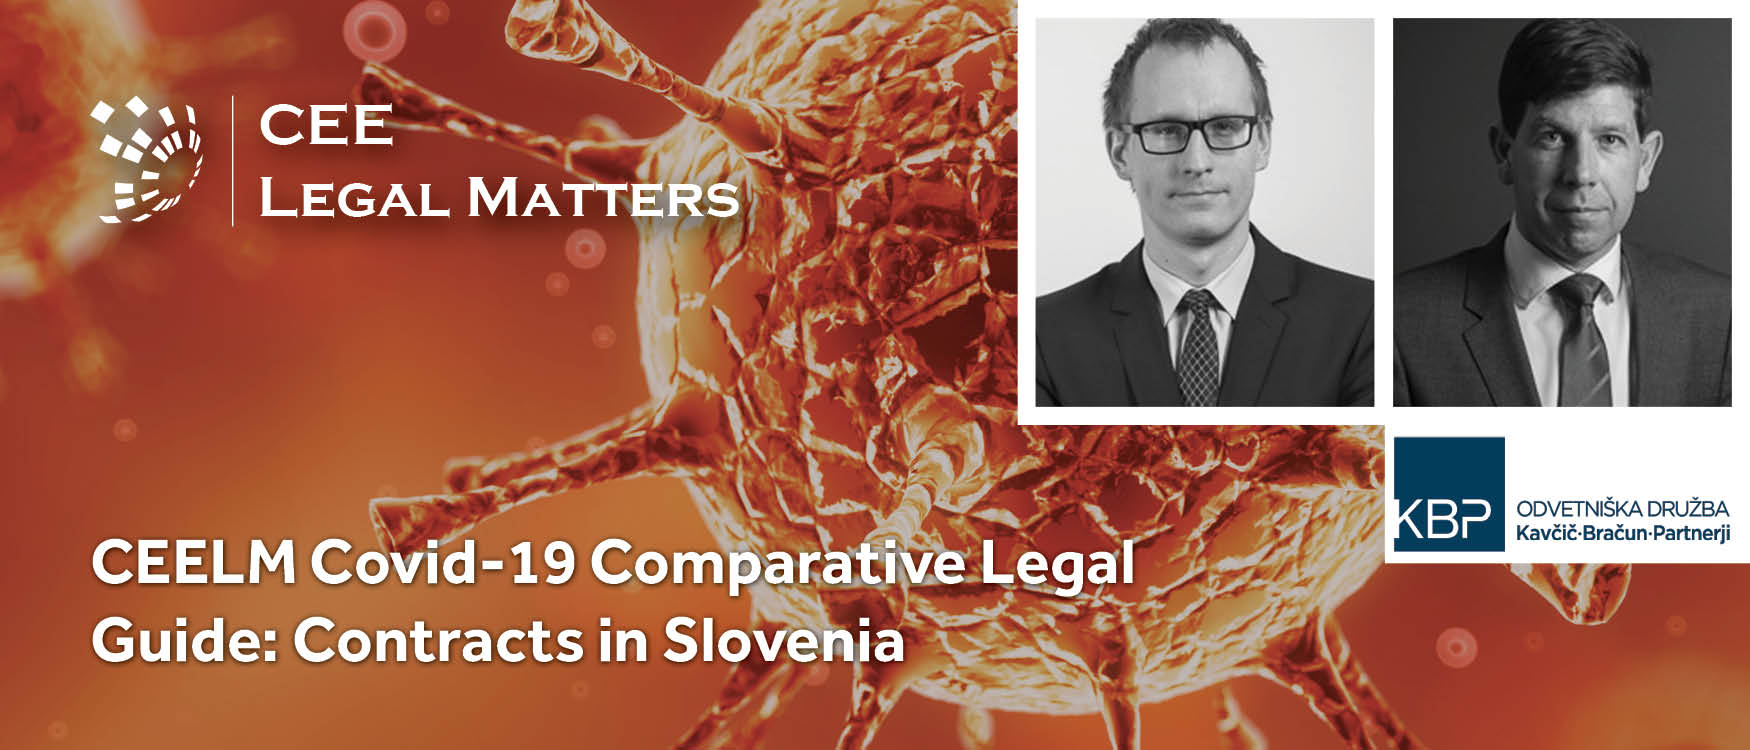 CEELM Covid-19 Comparative Legal Guide: Contracts in Slovenia